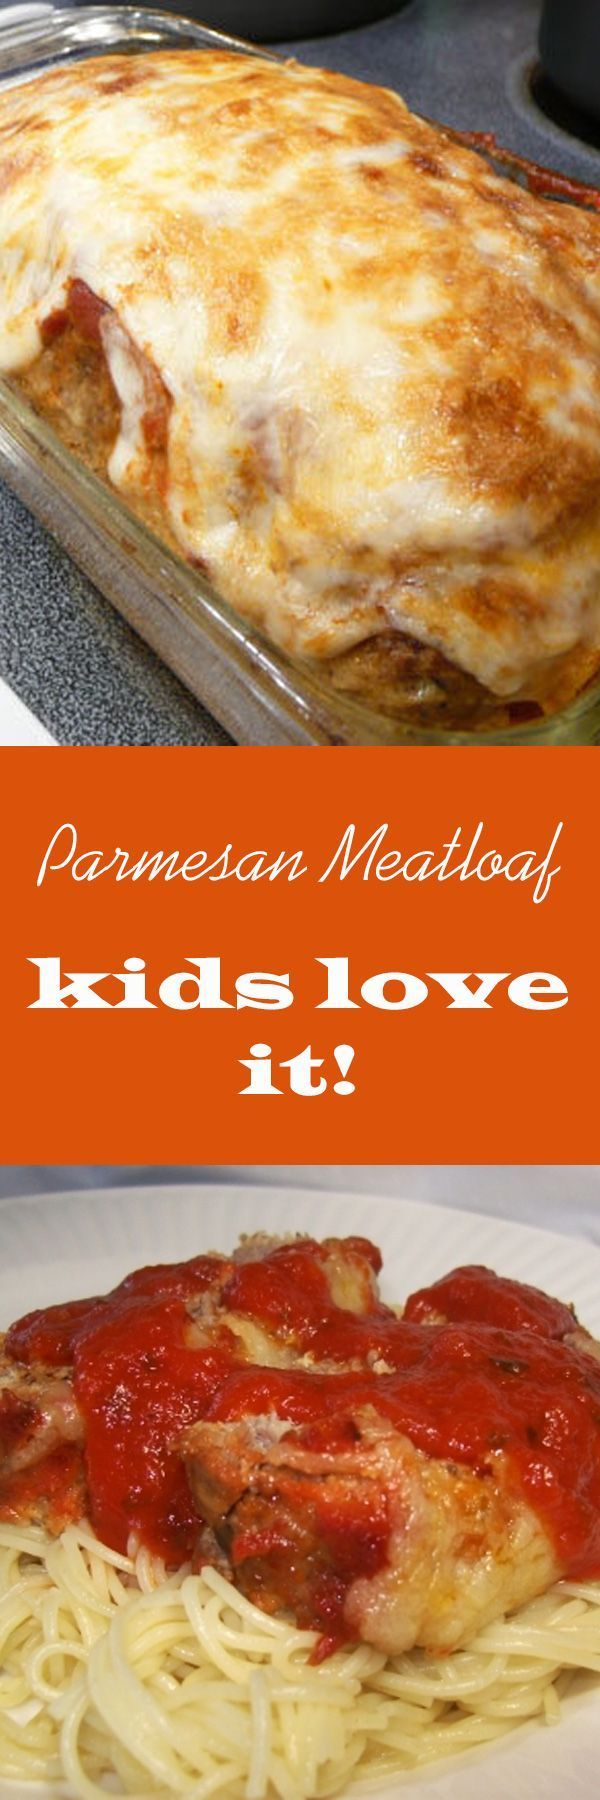 Kids really don't like meatloaf, right? This one is worth a try!